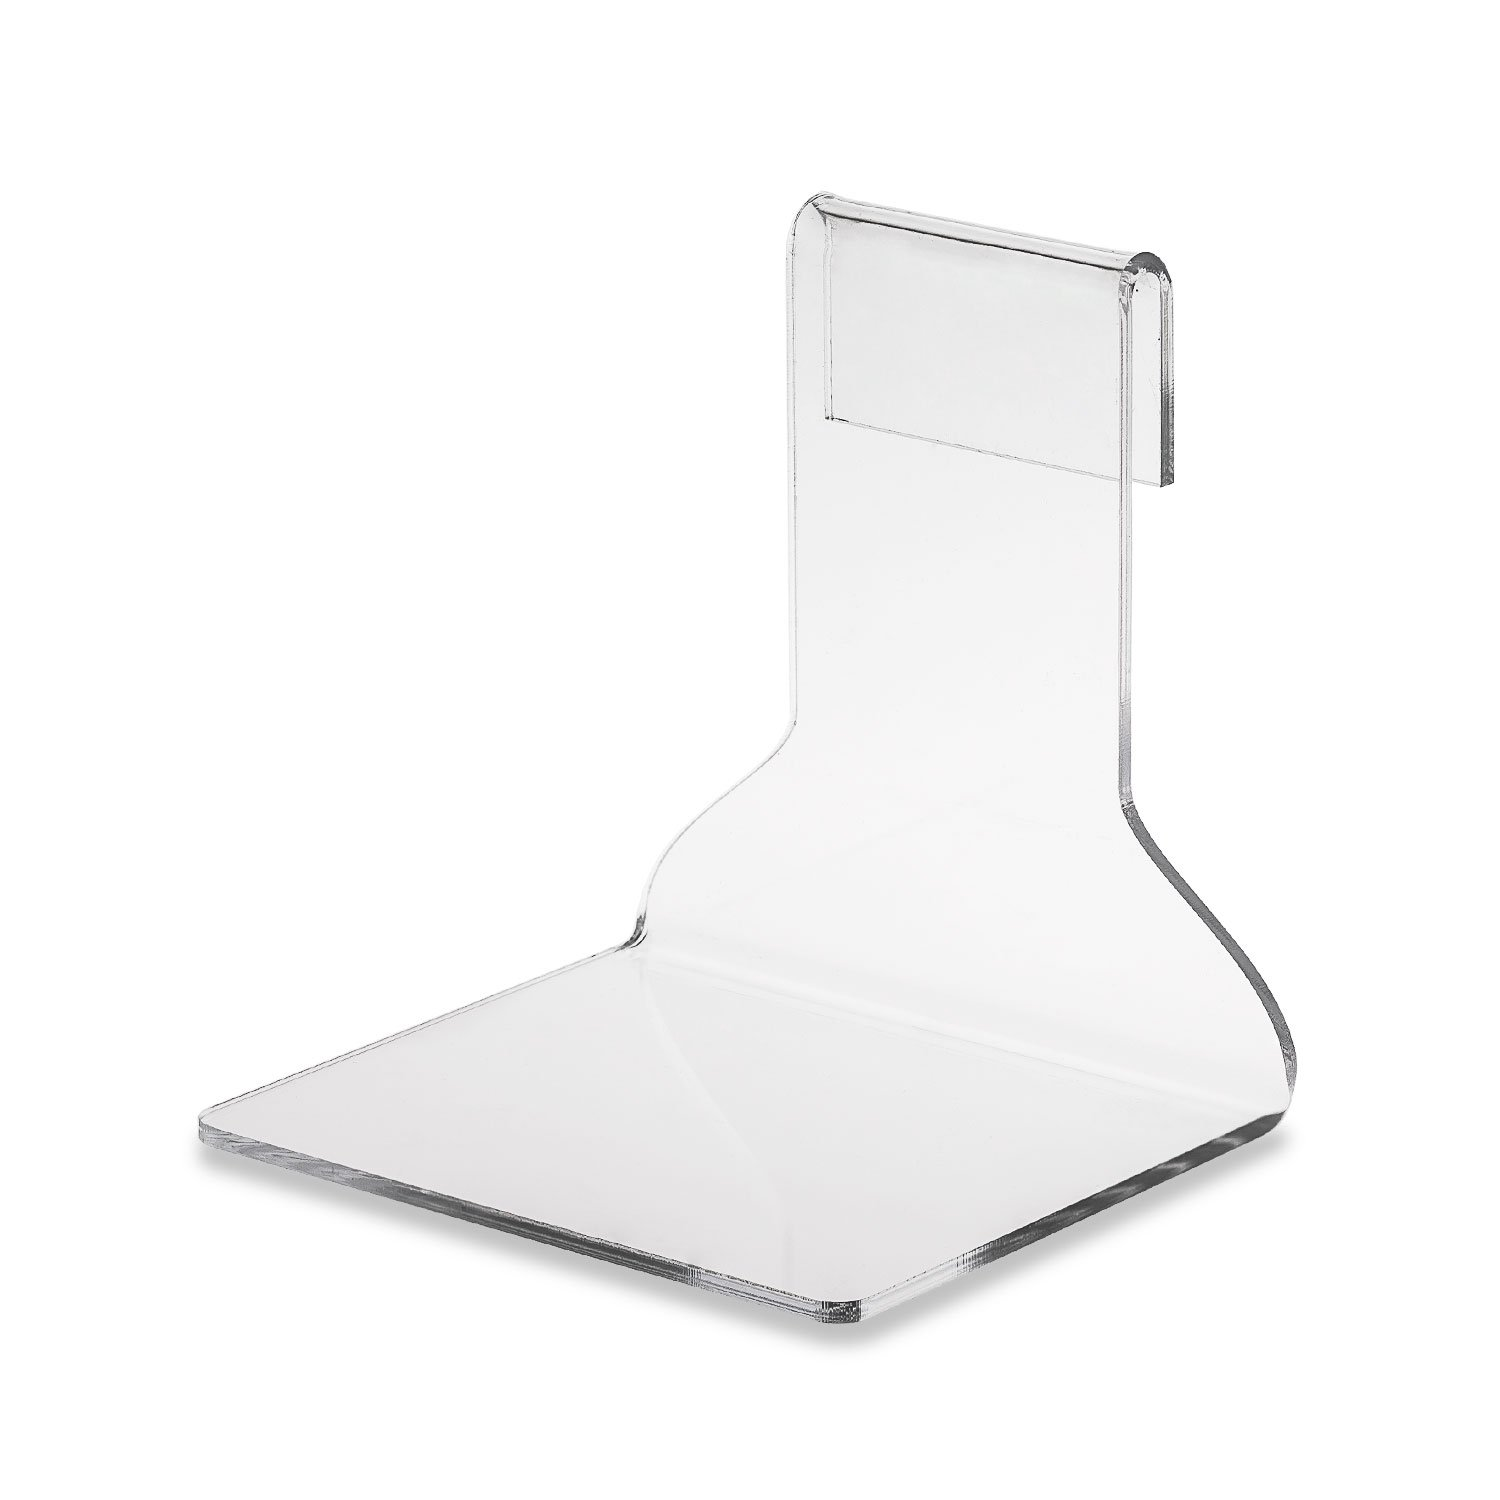 Source One Clear Acrylic Gridwall Shelf Displays 4.5 Inch & 6 Inch Wide Available Perfect for Displays (6 Pack, 4.5 Inch Wide)